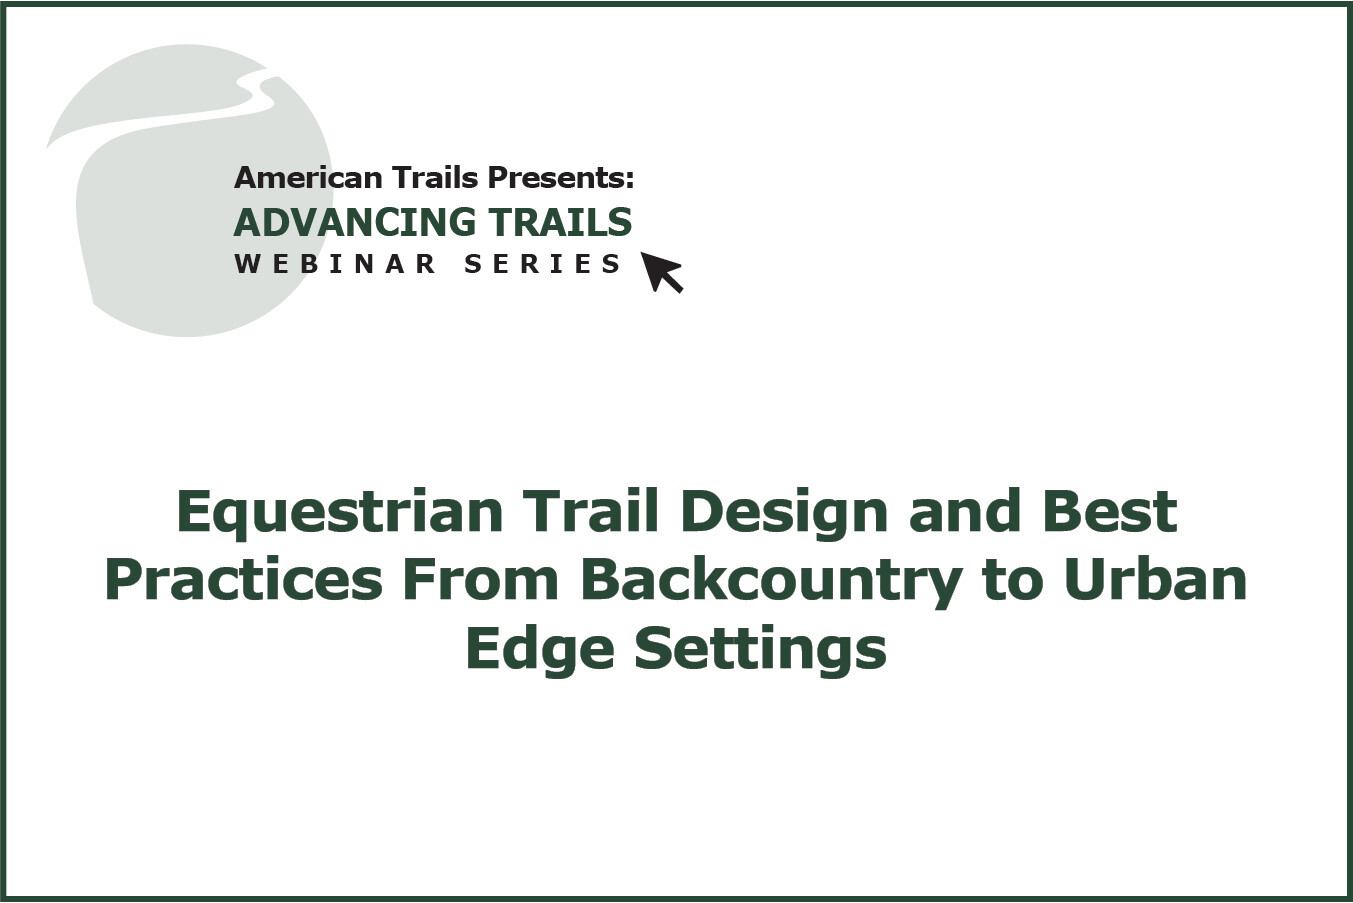 Equestrian Trail Design and Best Practices From Backcountry to Urban Edge Settings (FREE RECORDING)